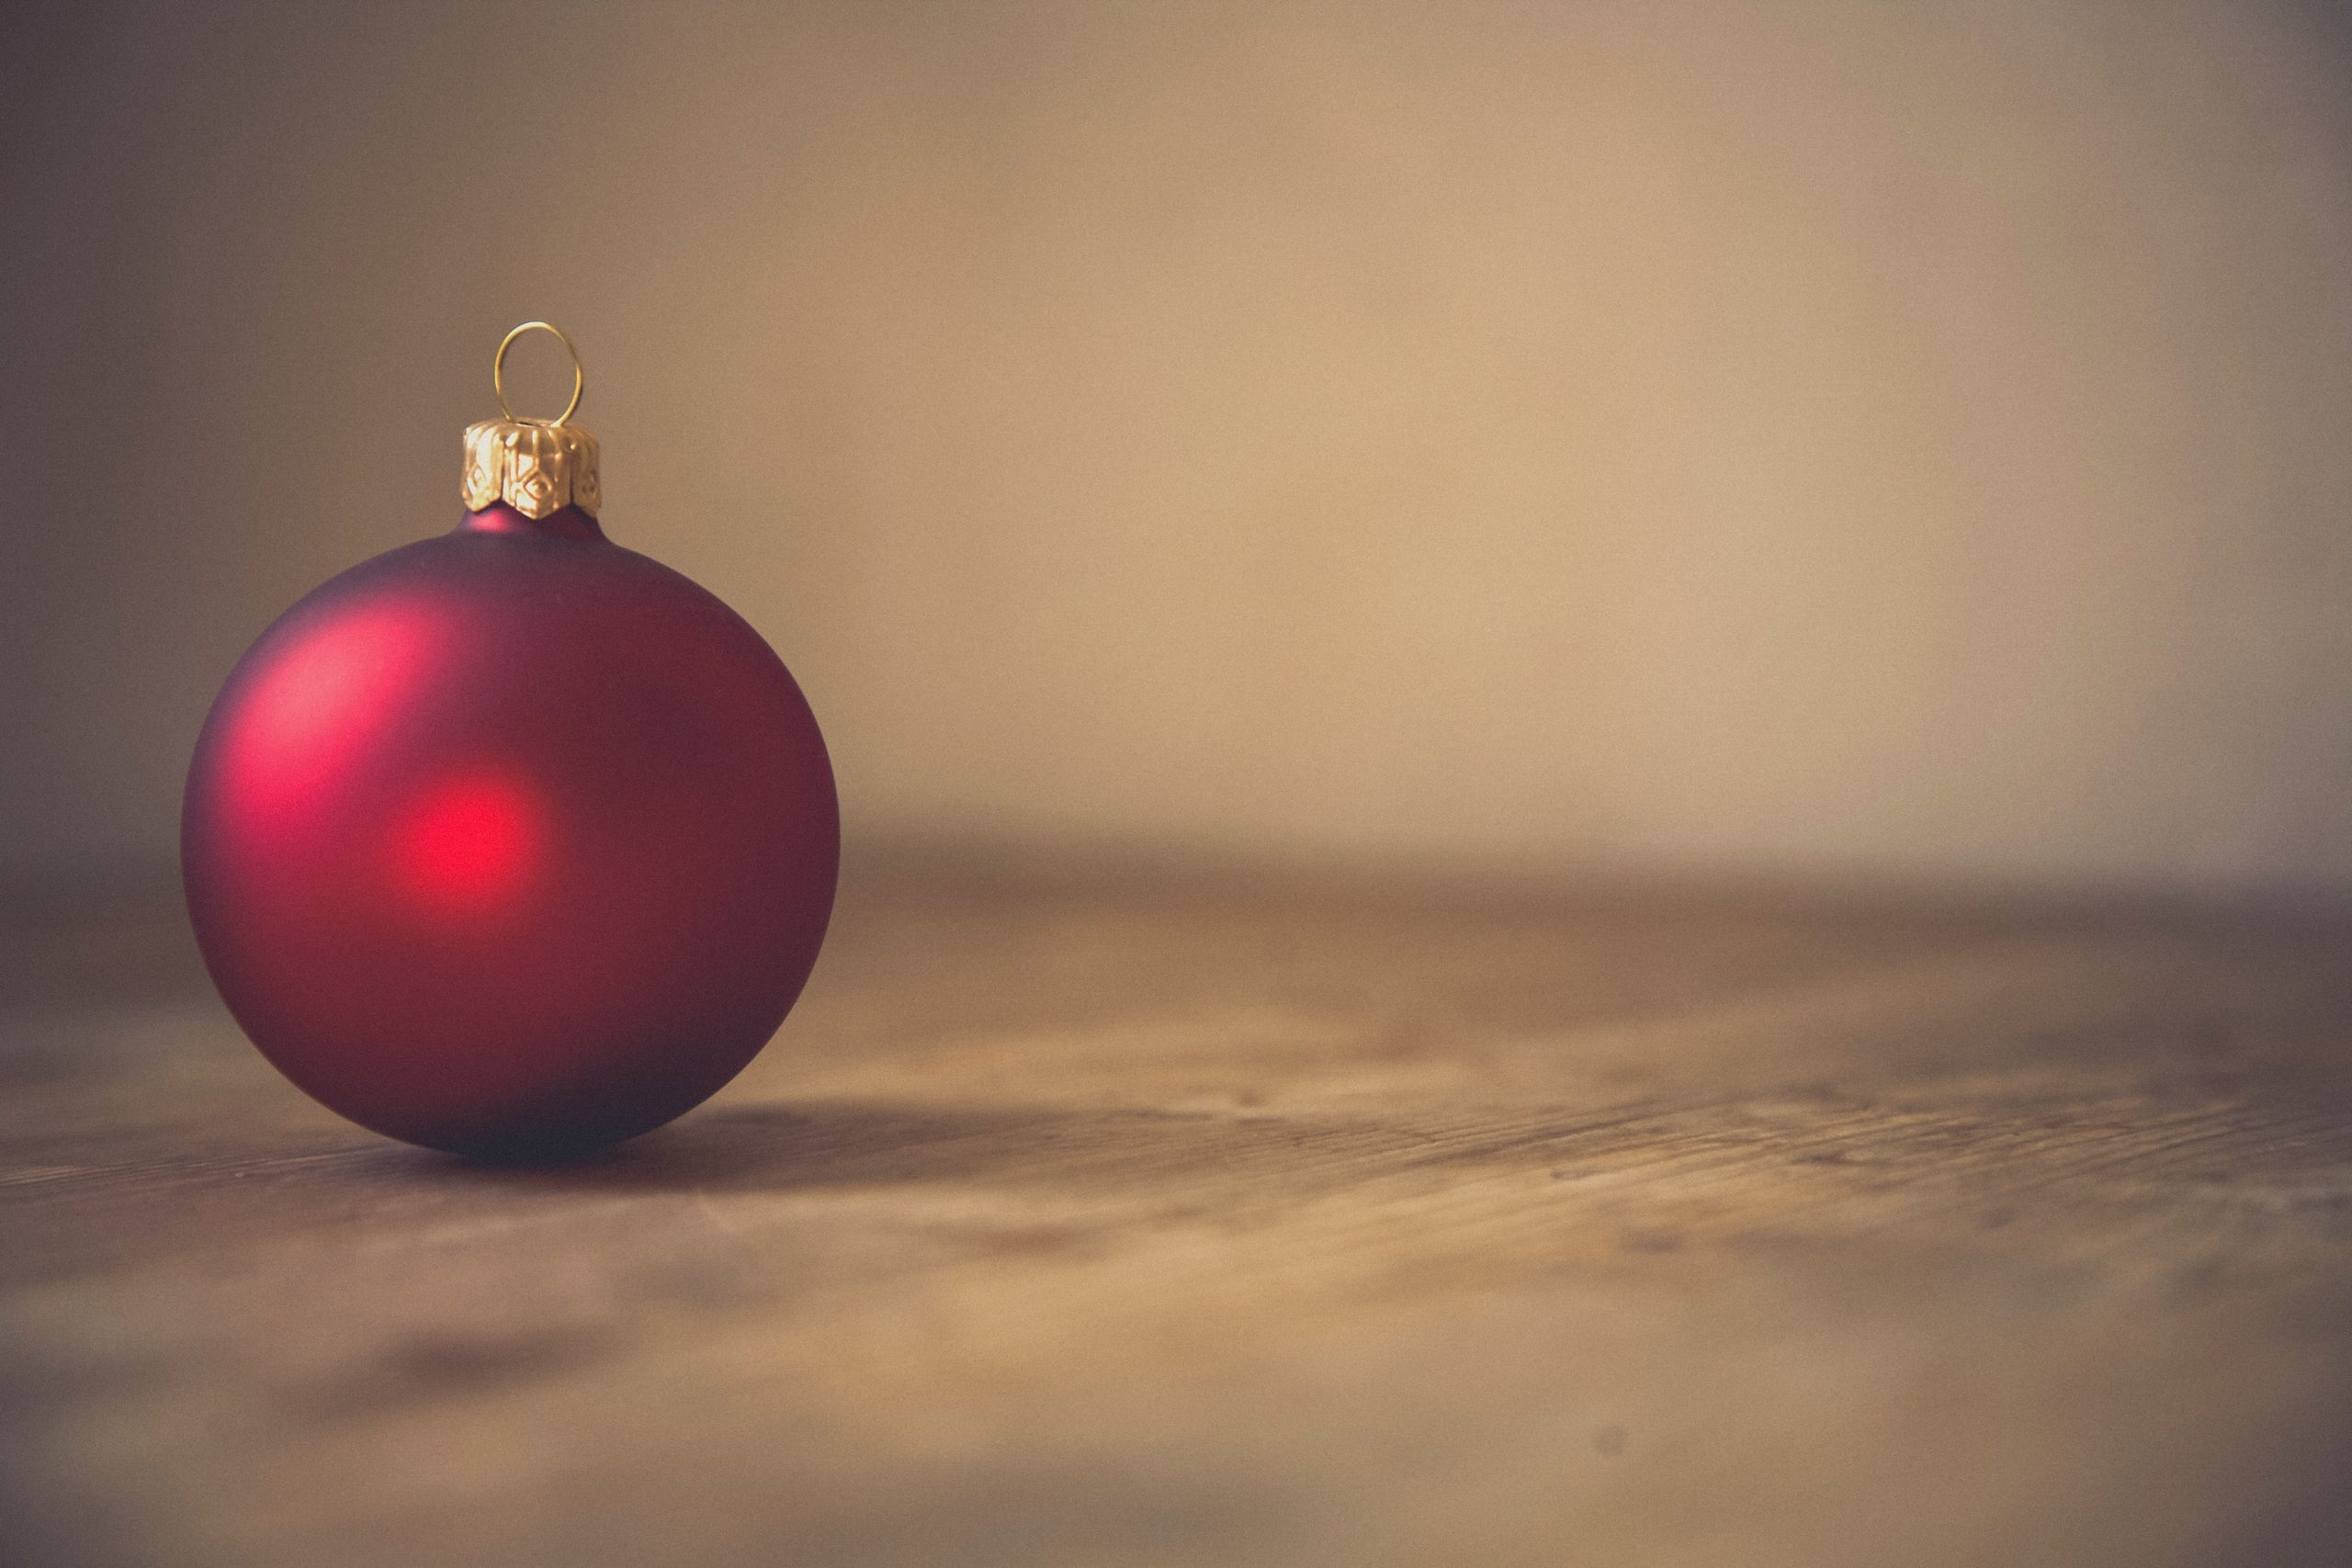 The Holidays Are Coming - Are You Ready?